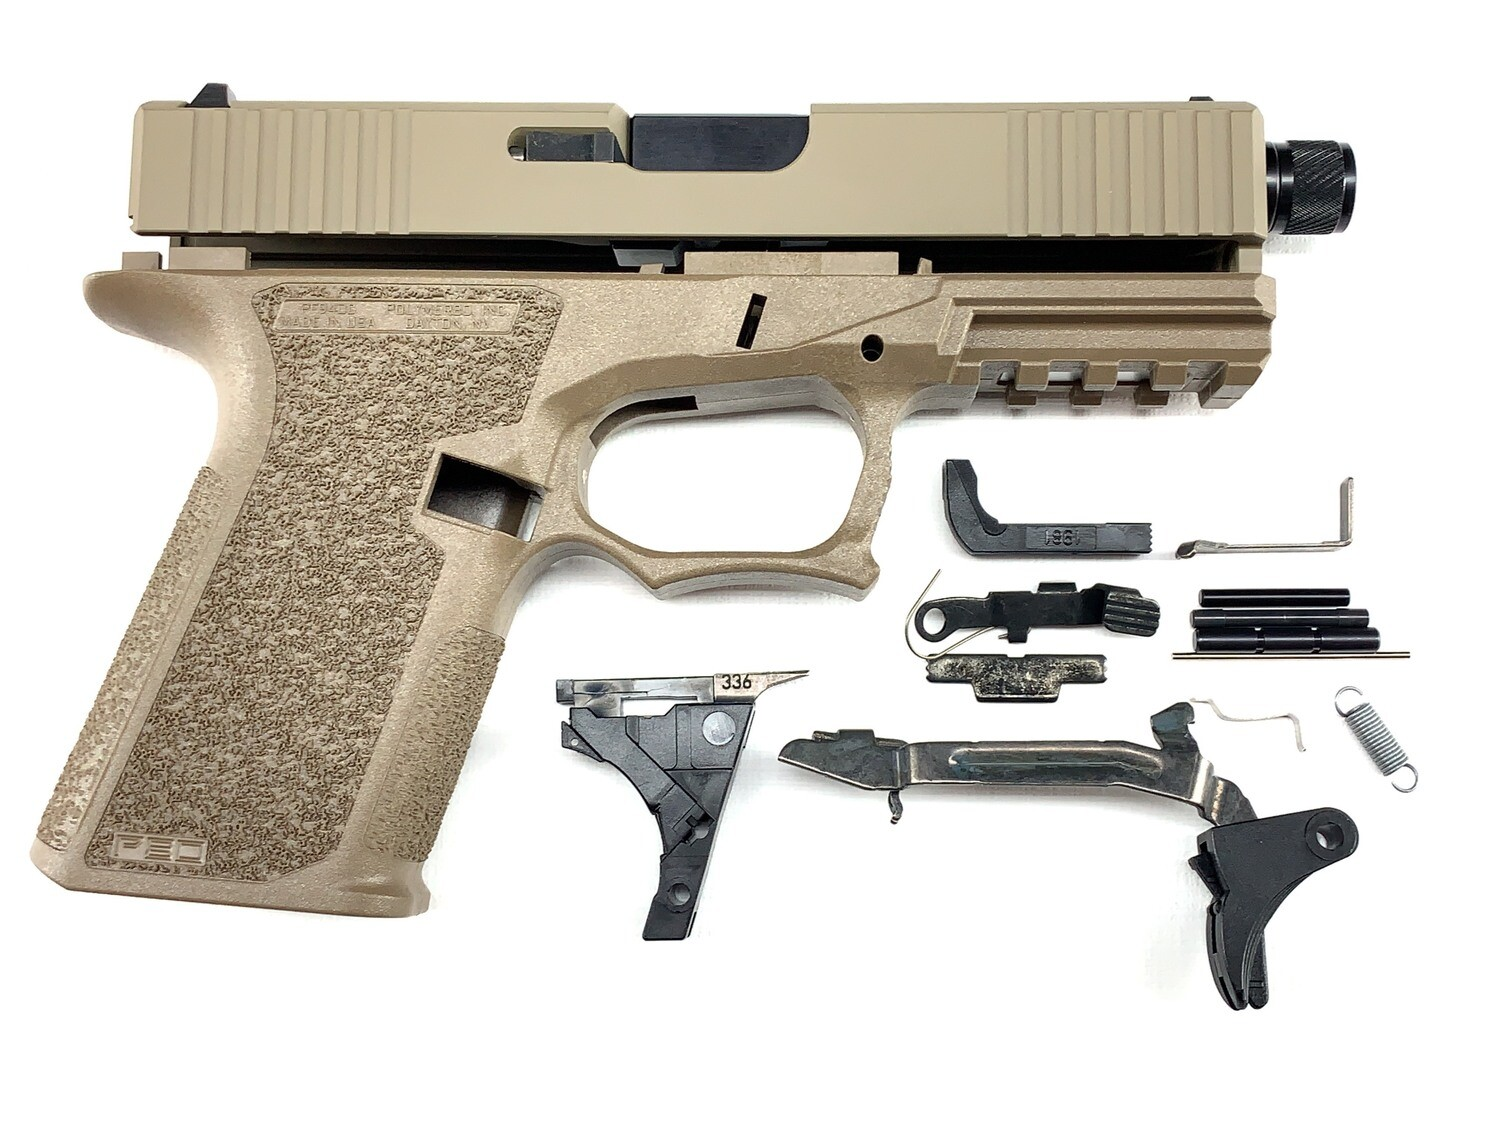 Patriot G19 80% Pistol Build Kit With Threaded 9mm Barrel - Polymer80 PF940C - FDE